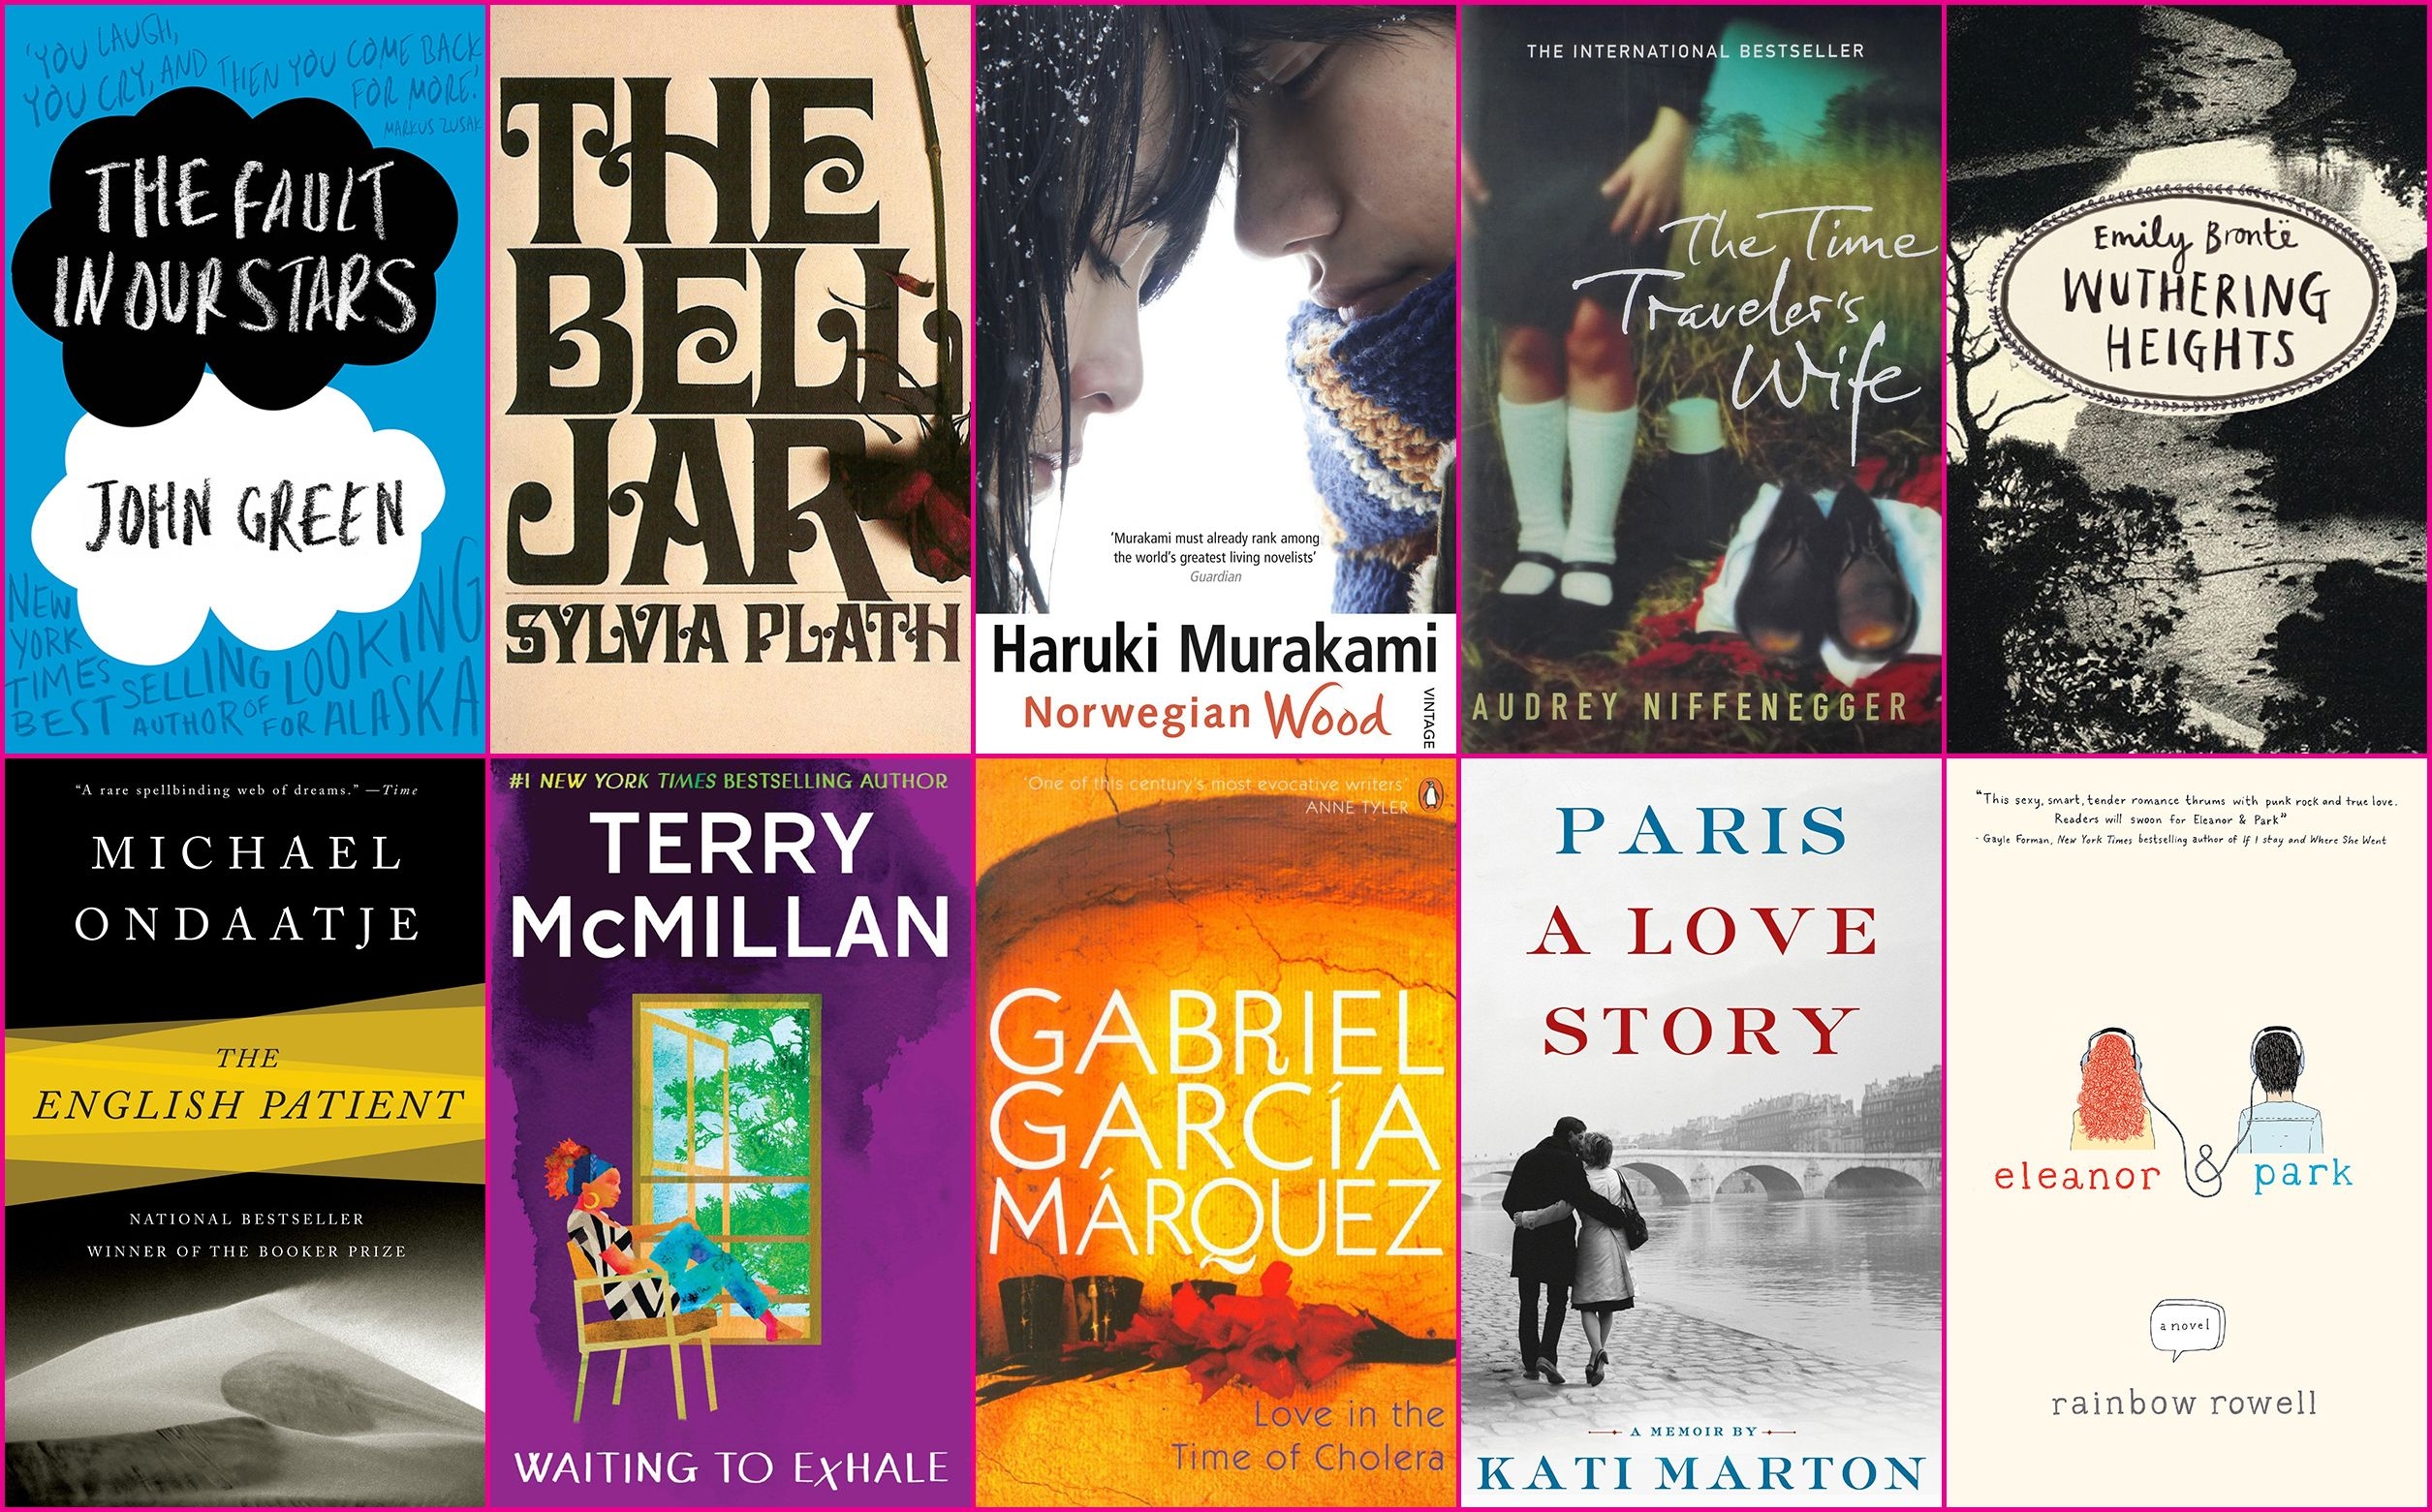 17 Books to Read on Valentine's Day, Before, After or Instead of a Hot Date